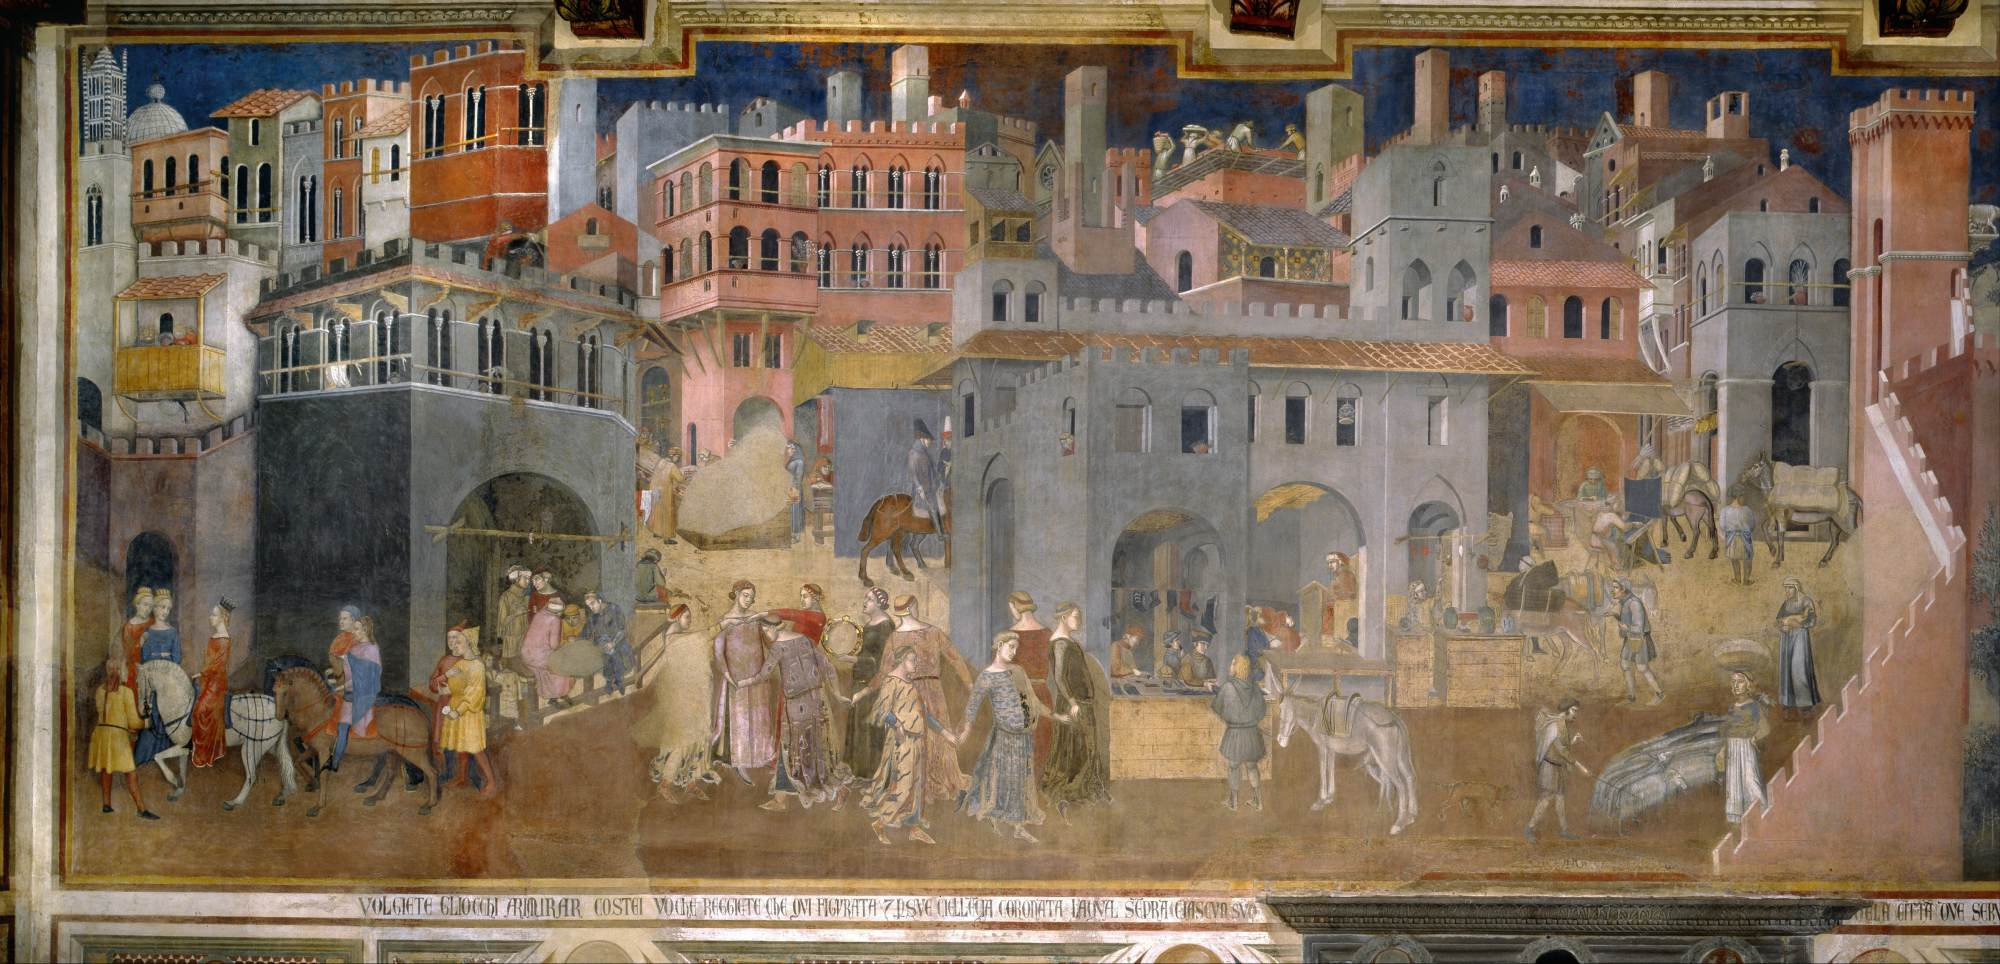 Ambrogio Lorenzetti, Peaceful City, detail from Effects of Good Government in the City and in the Country